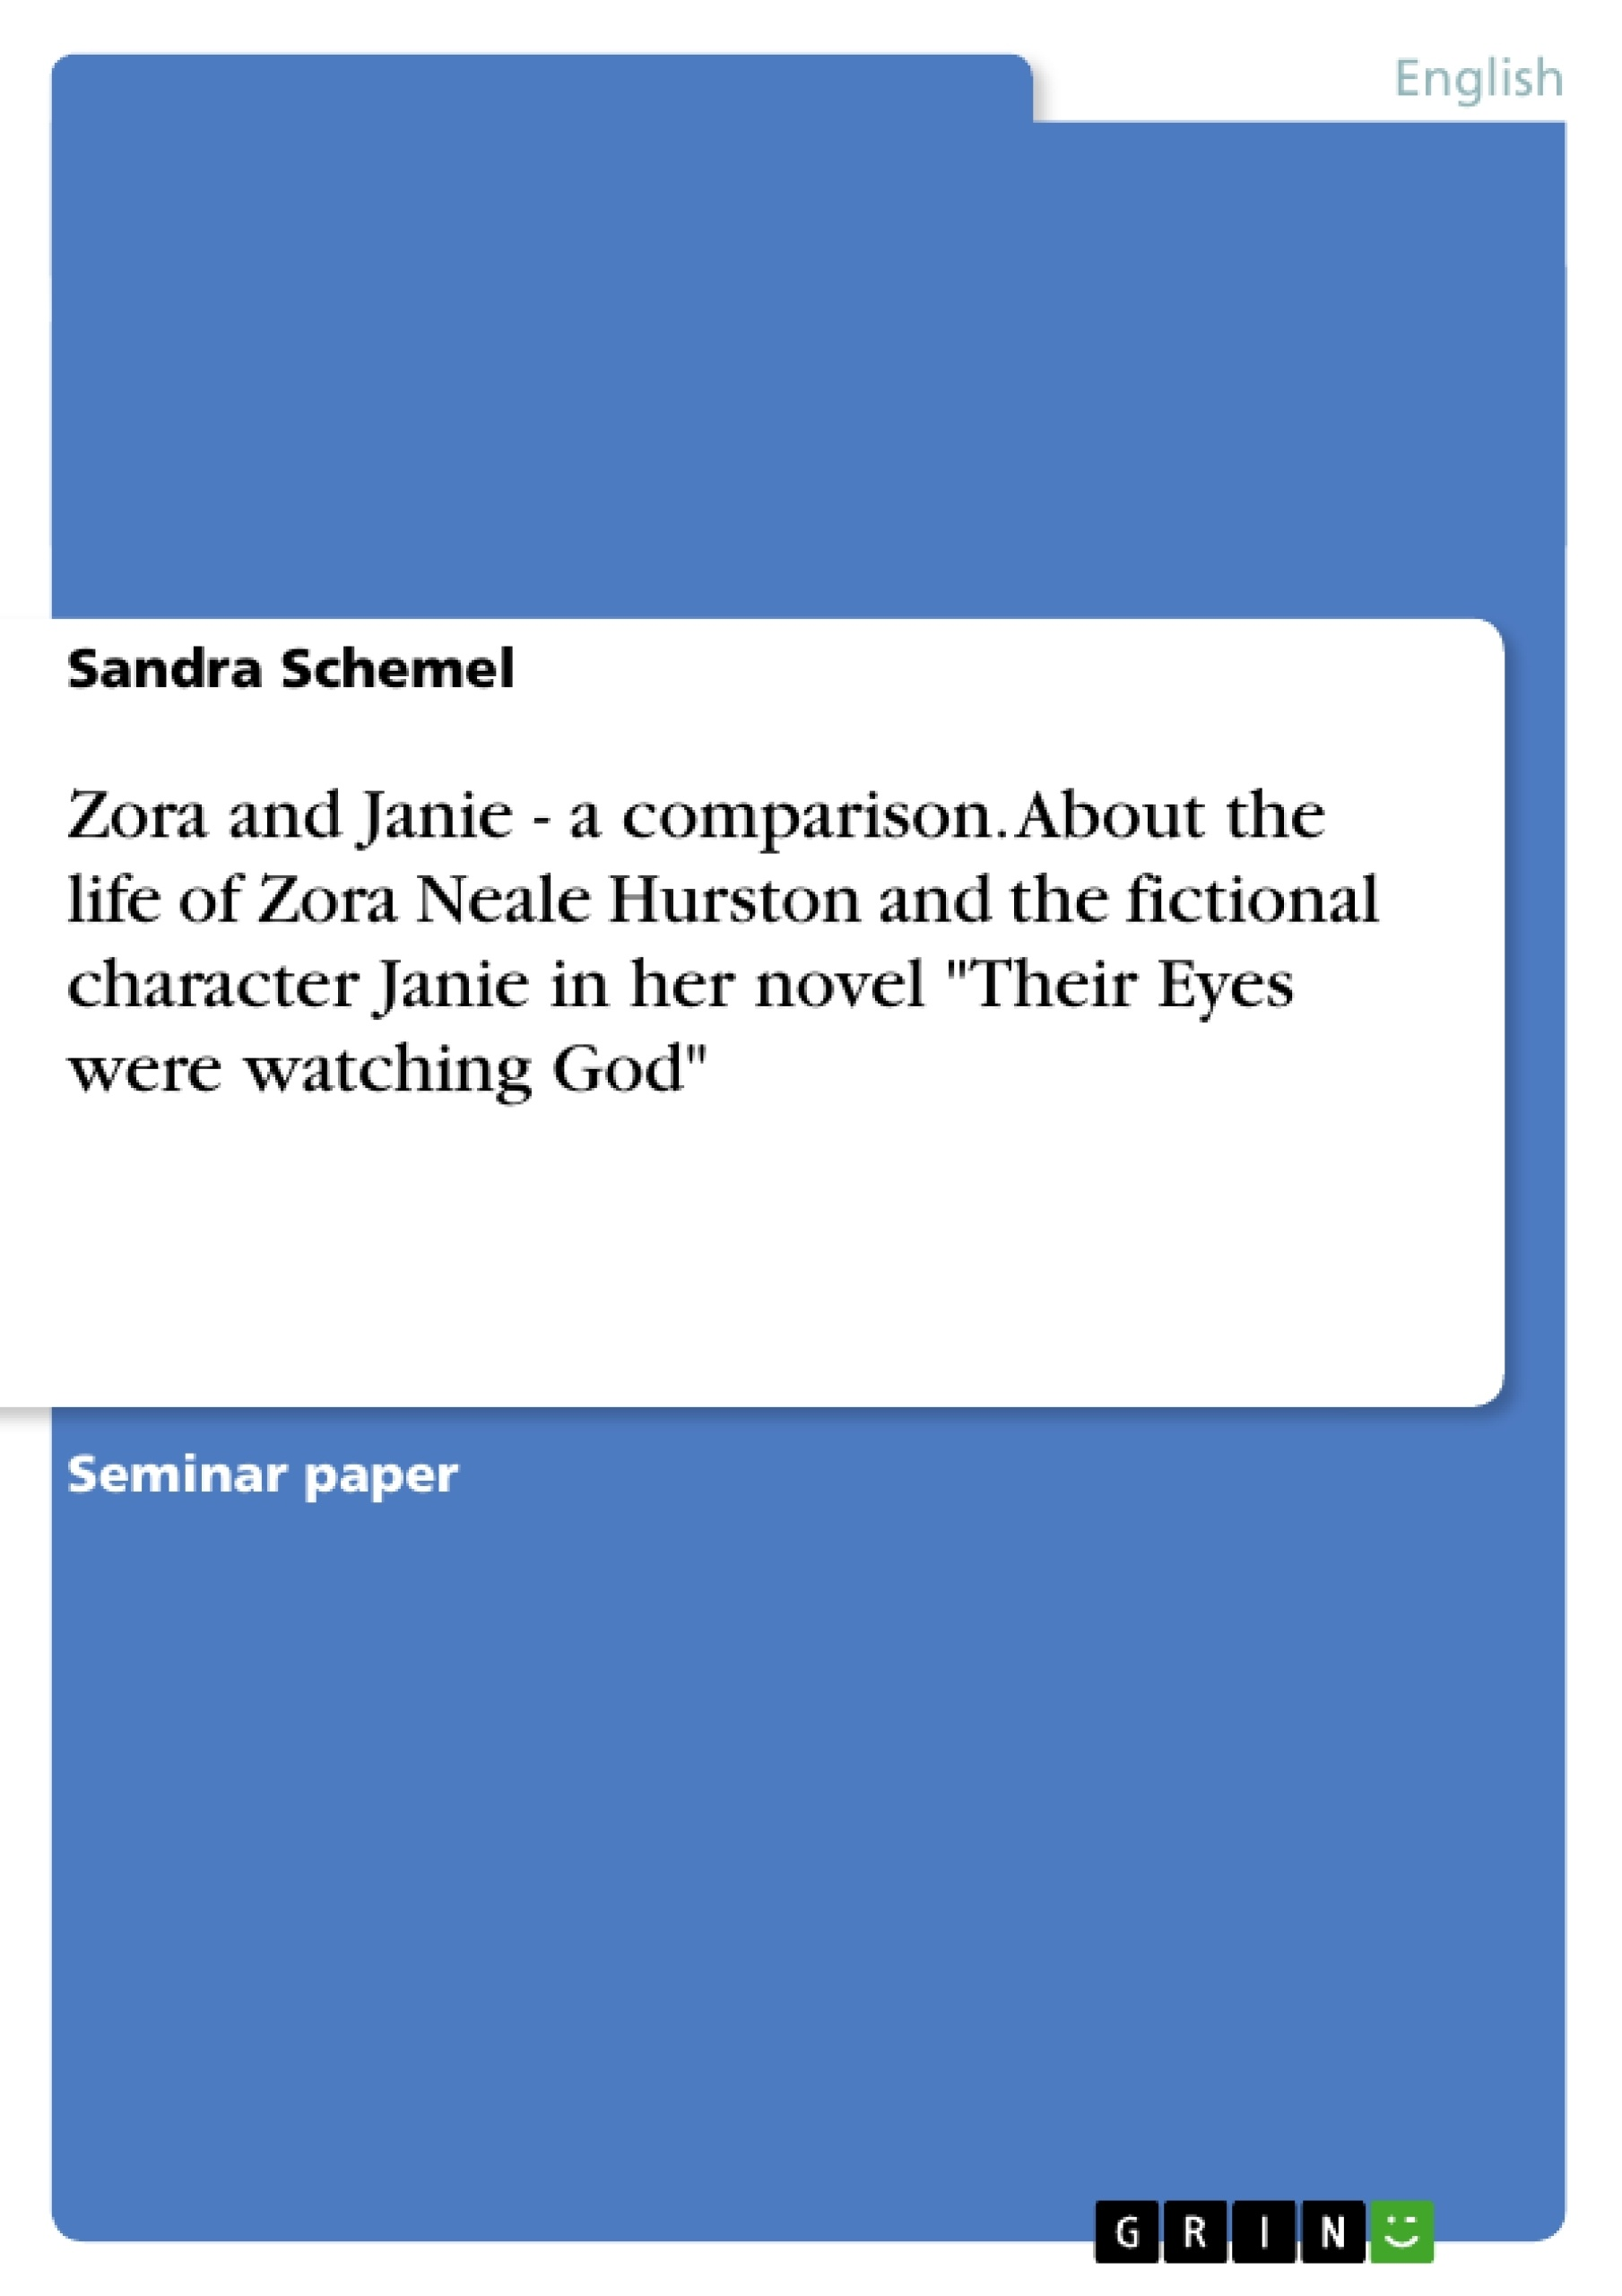 zora and janie   a comparison about the life of zora neale  zora and janie   a comparison about the life of zora neale hurston and the  fictional character janie in her novel their eyes were watching god